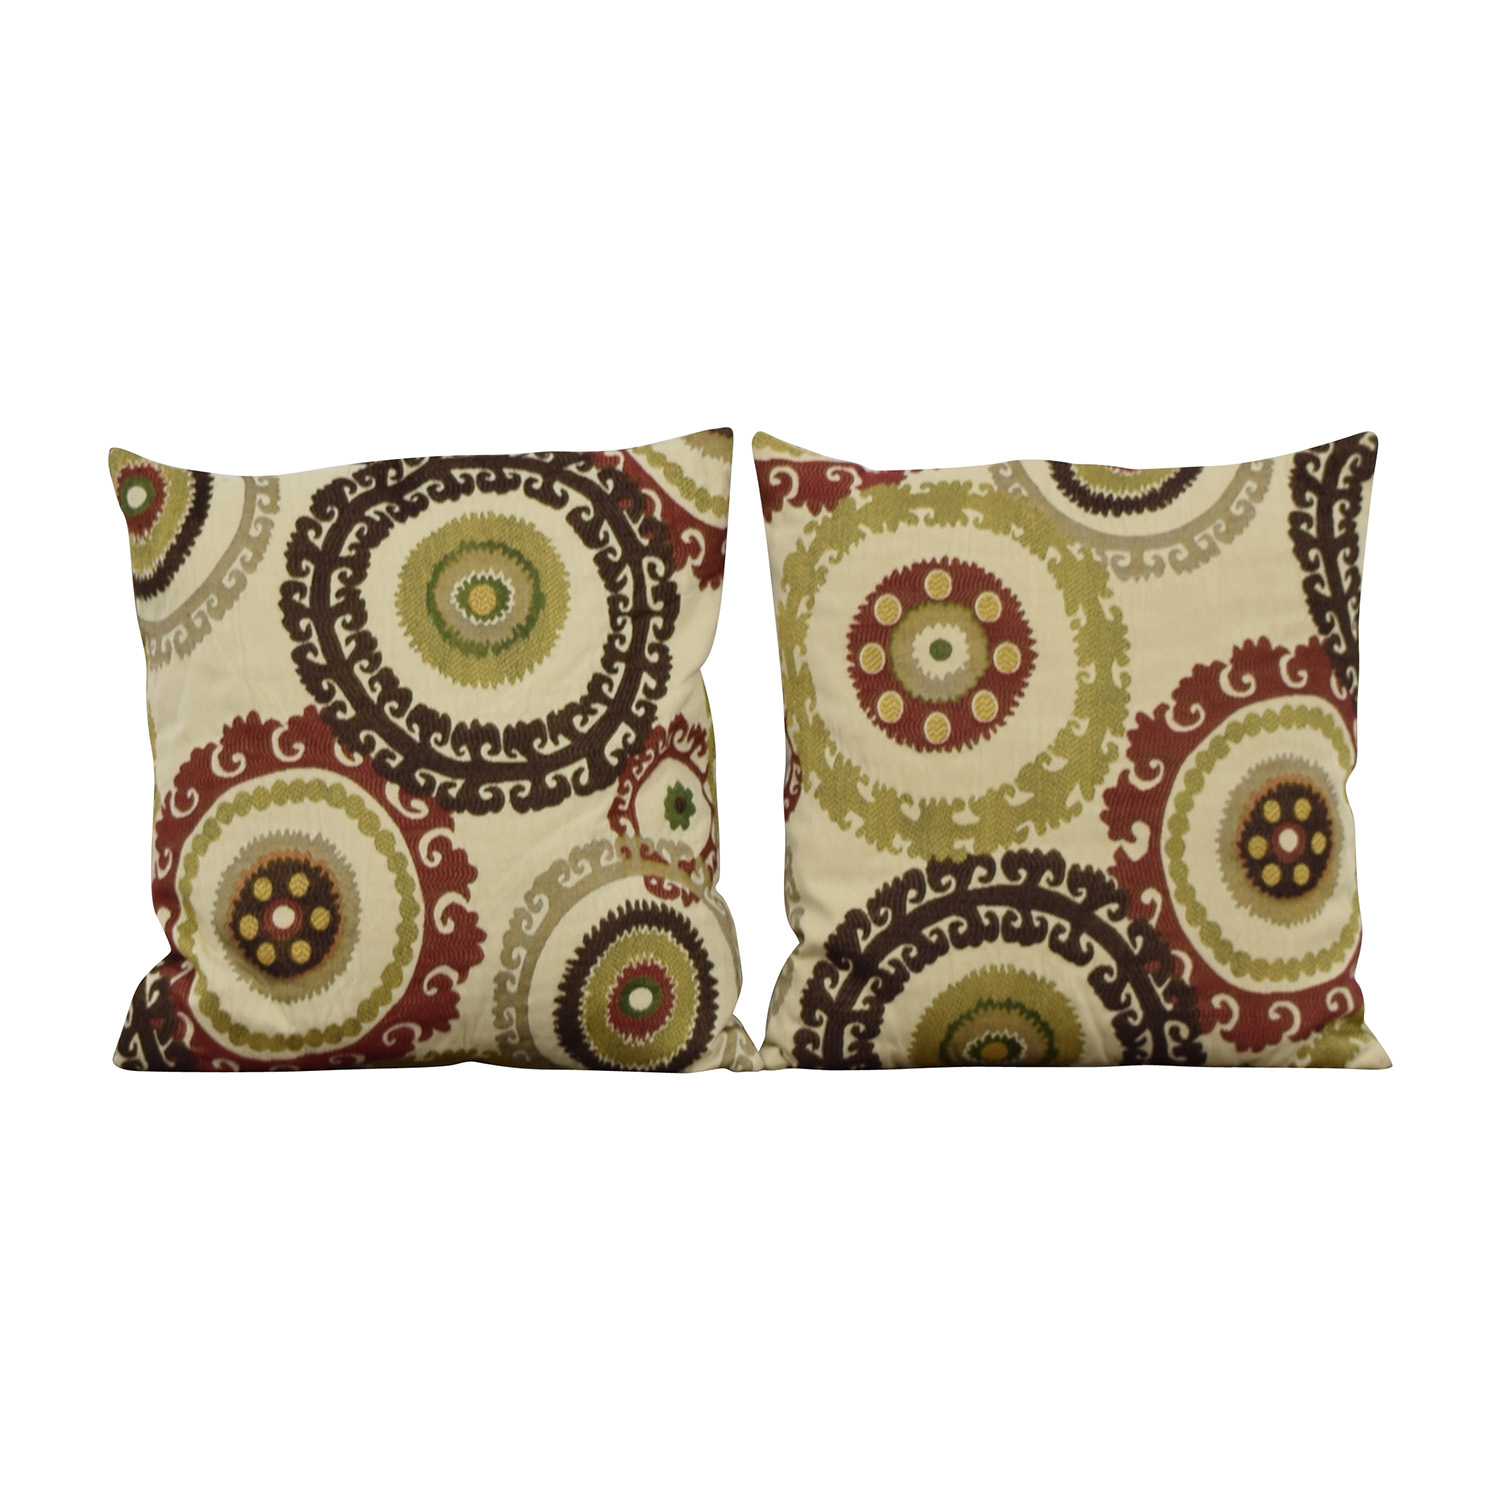 Multi-colored Embroidered Square Pillows nj